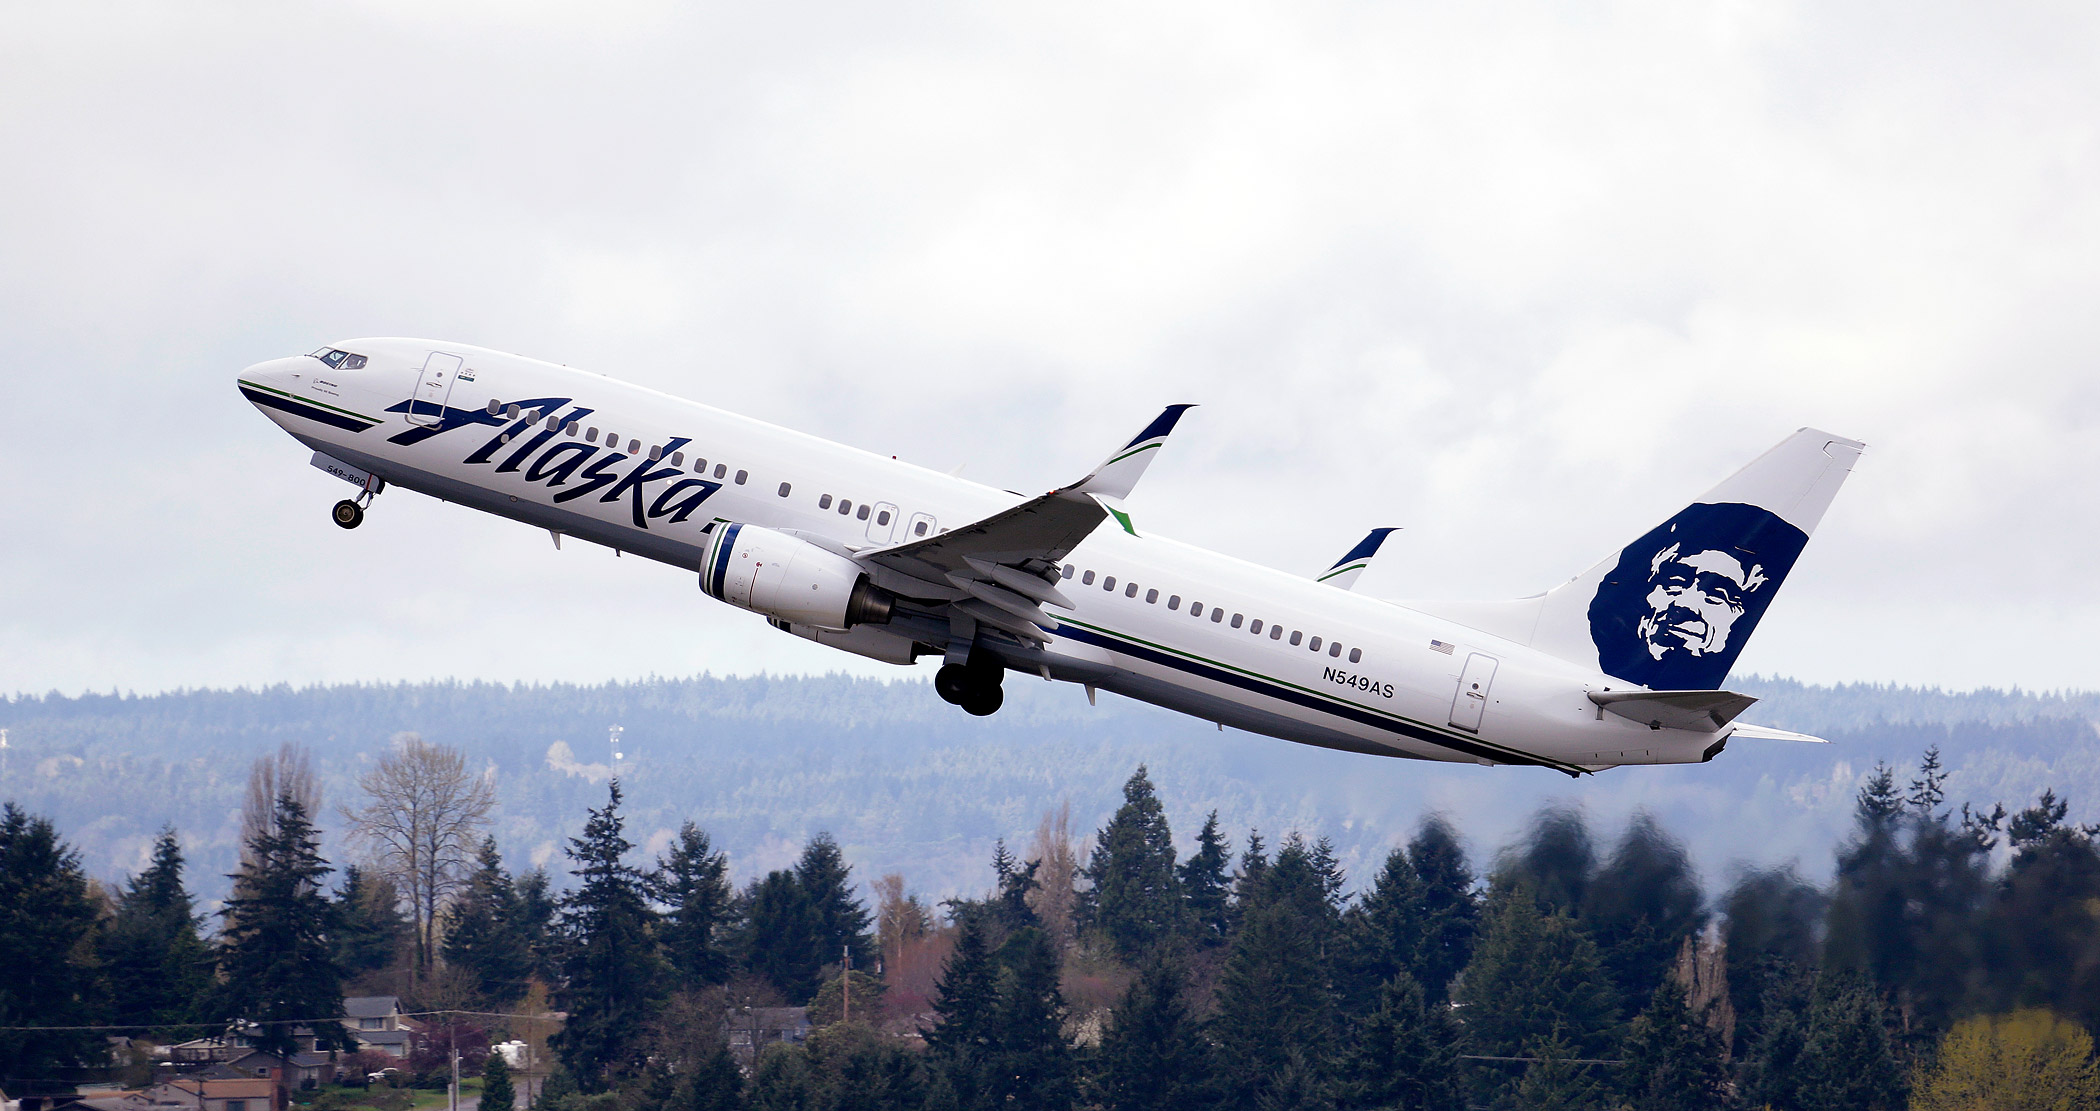 An Alaska Airlines jet takes off at Seattle-Tacoma International Airport in SeaTac, Wash. on March 24, 2015.